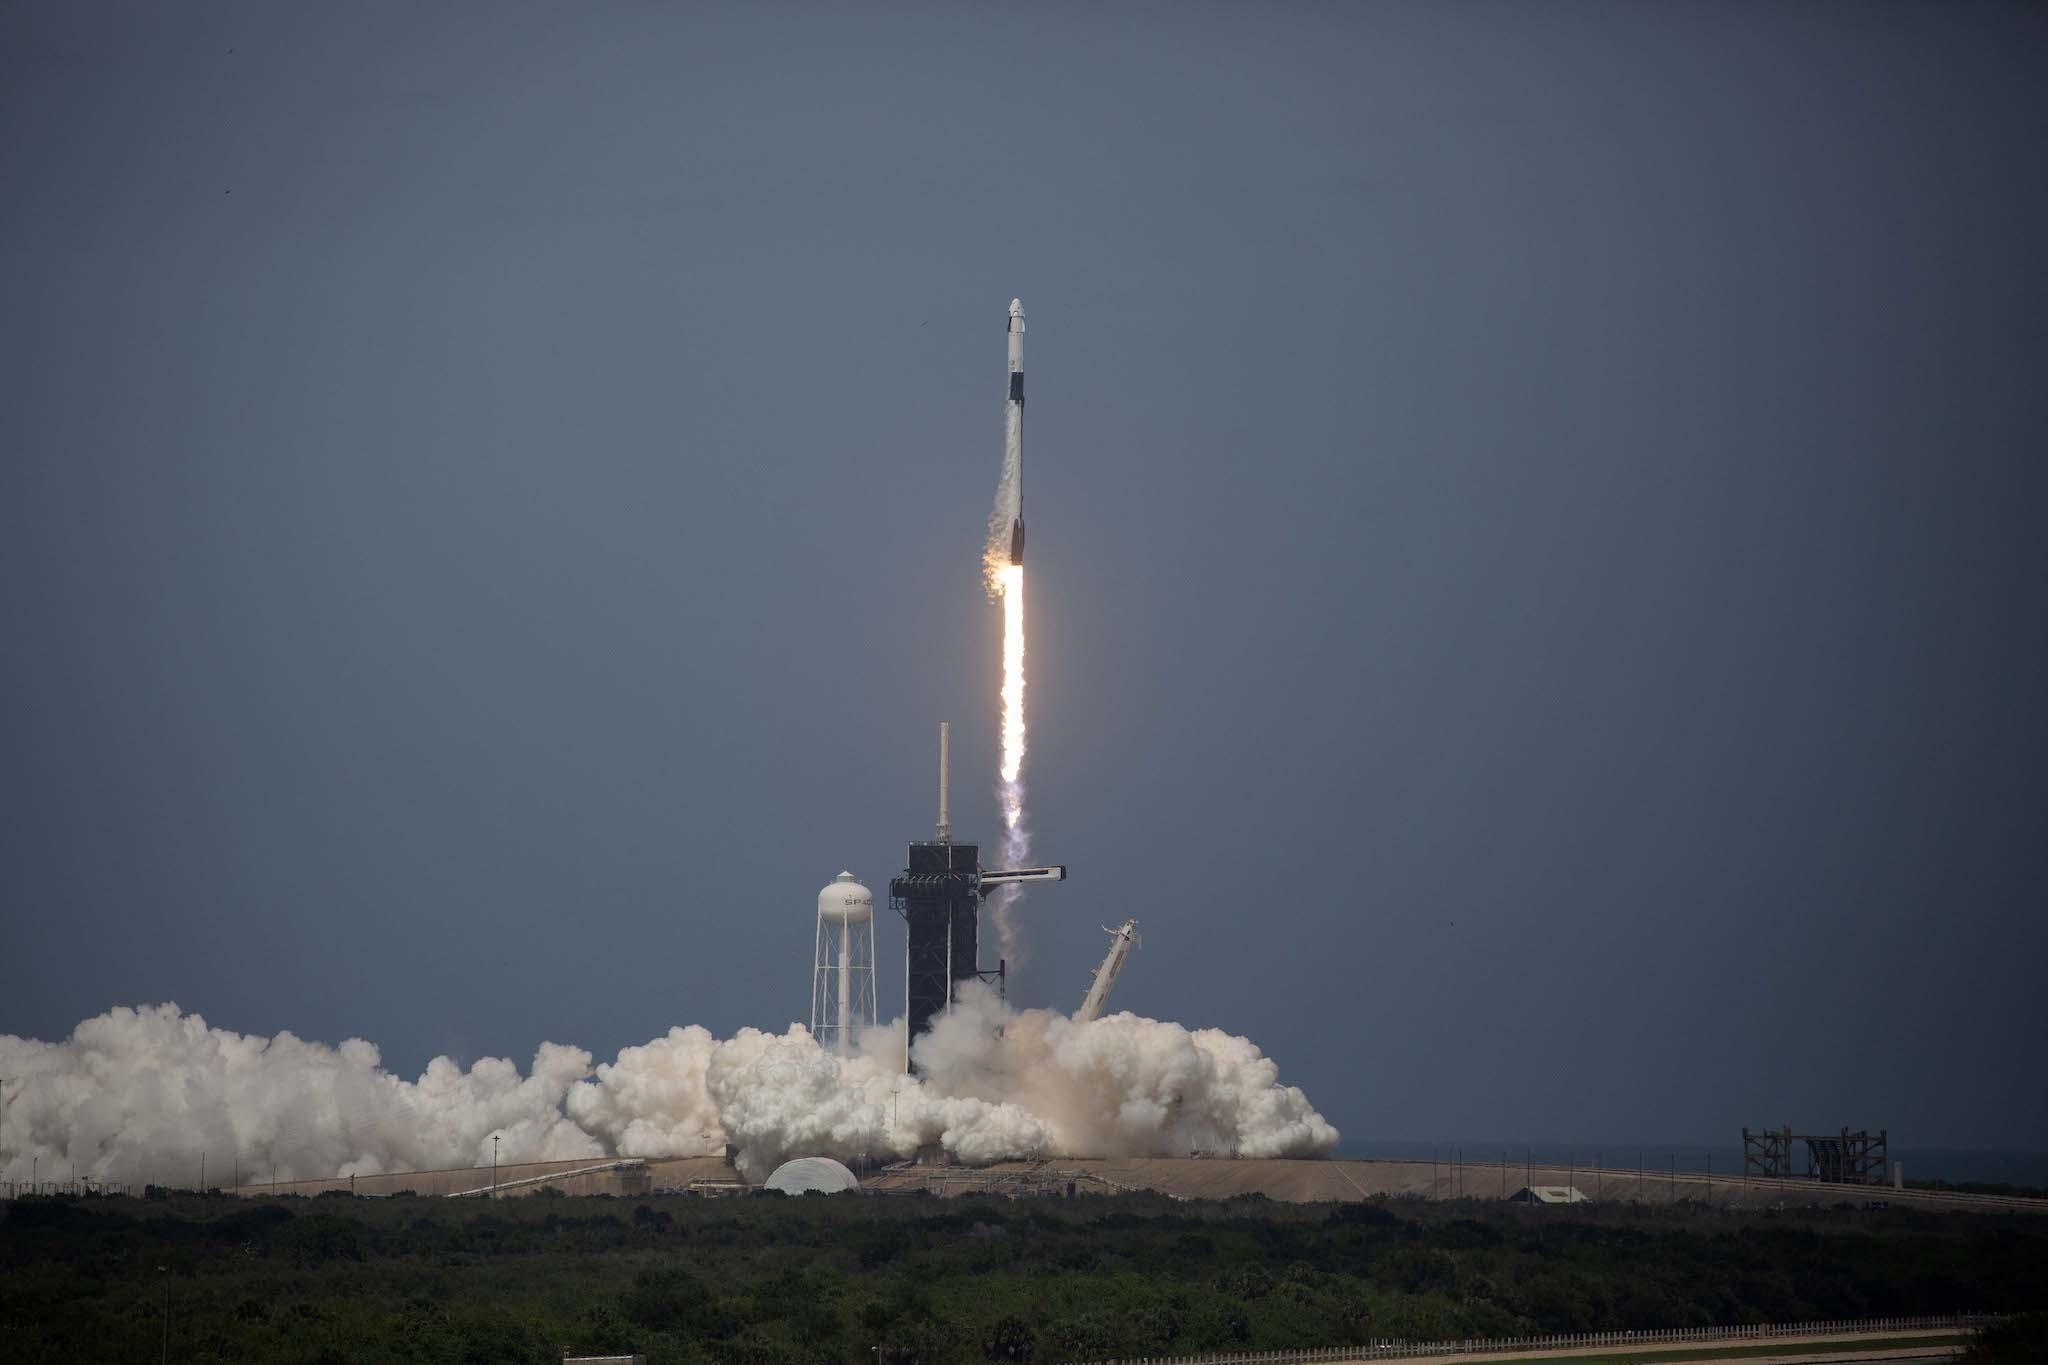 Video shows SpaceX launching Nasa astronauts into space on historic mission